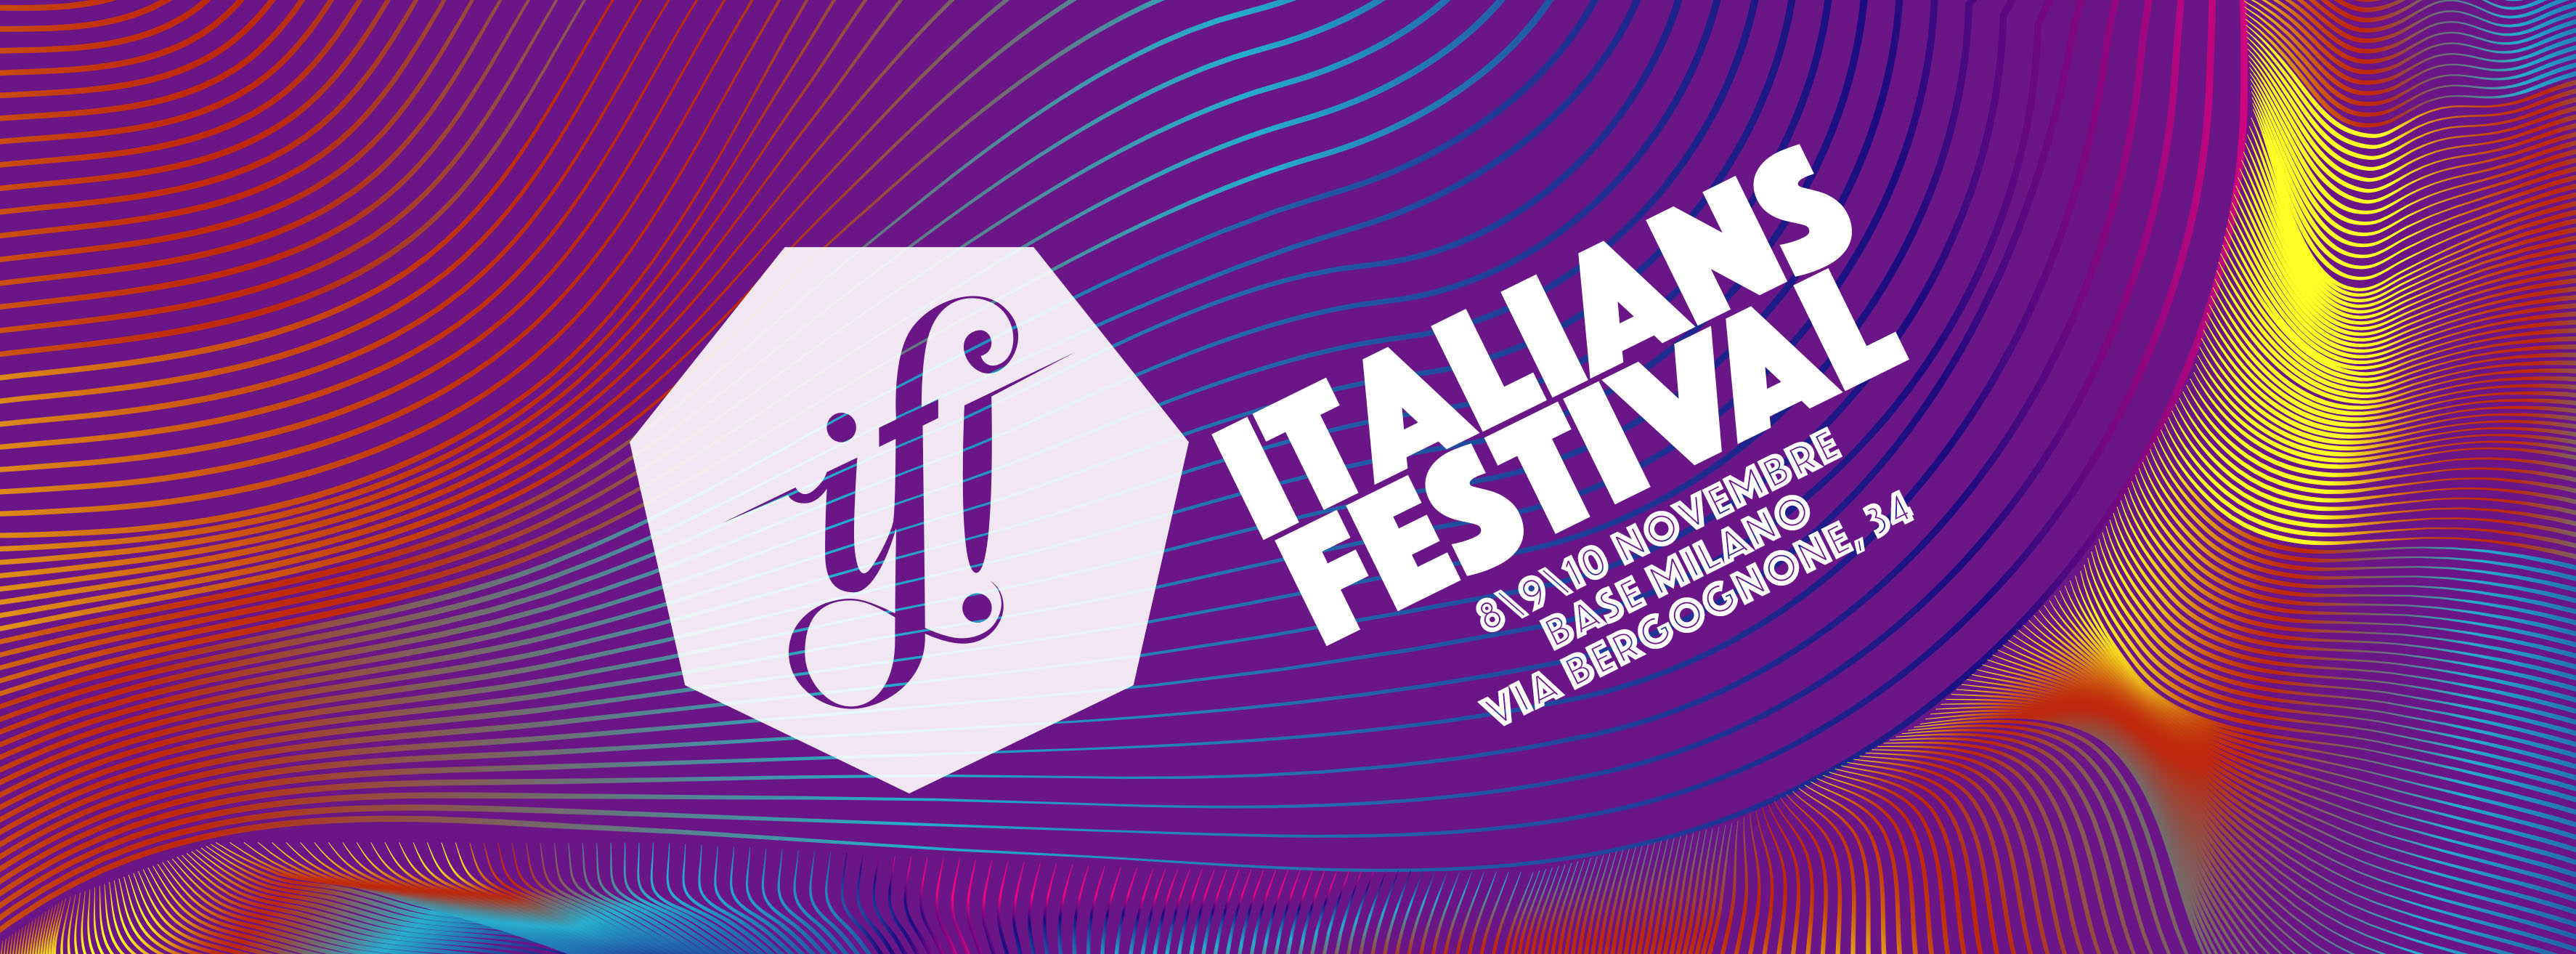 OBE PARTNER DI IF! ITALIANS FESTIVAL